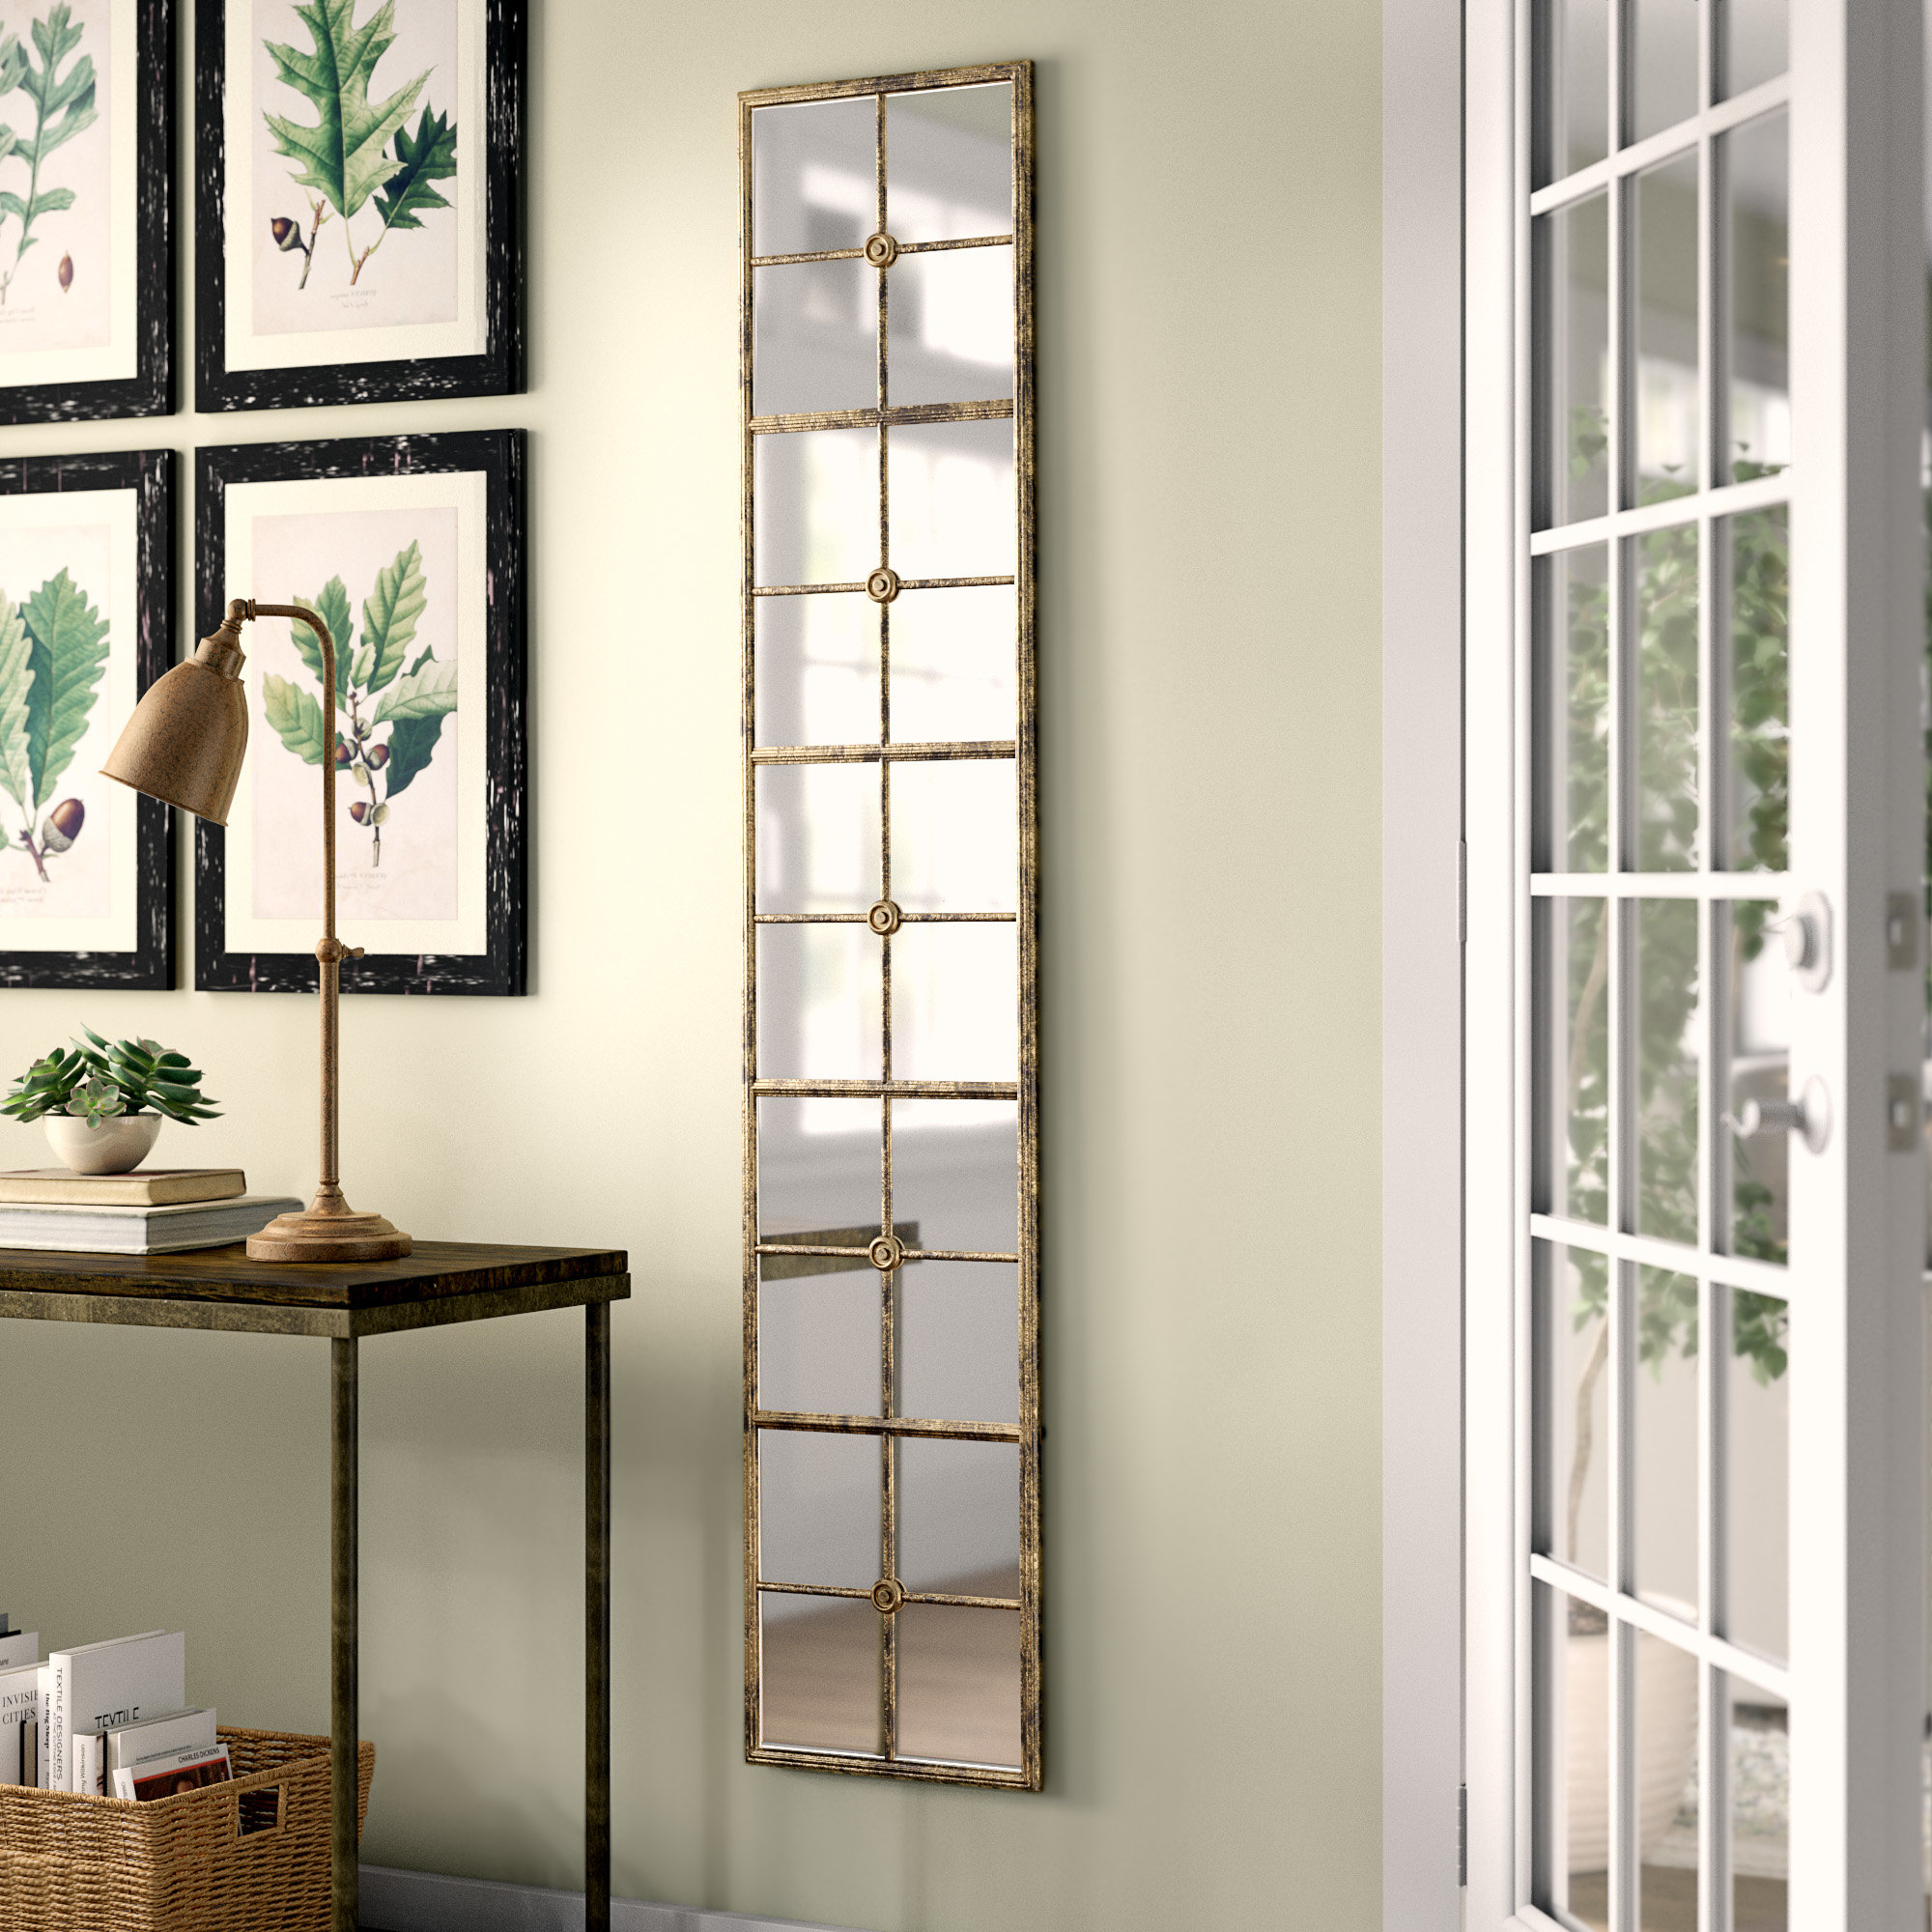 Exciting Full Wall Mirror Design Wardrobe Disney Plans For for Colton Modern & Contemporary Wall Mirrors (Image 14 of 30)